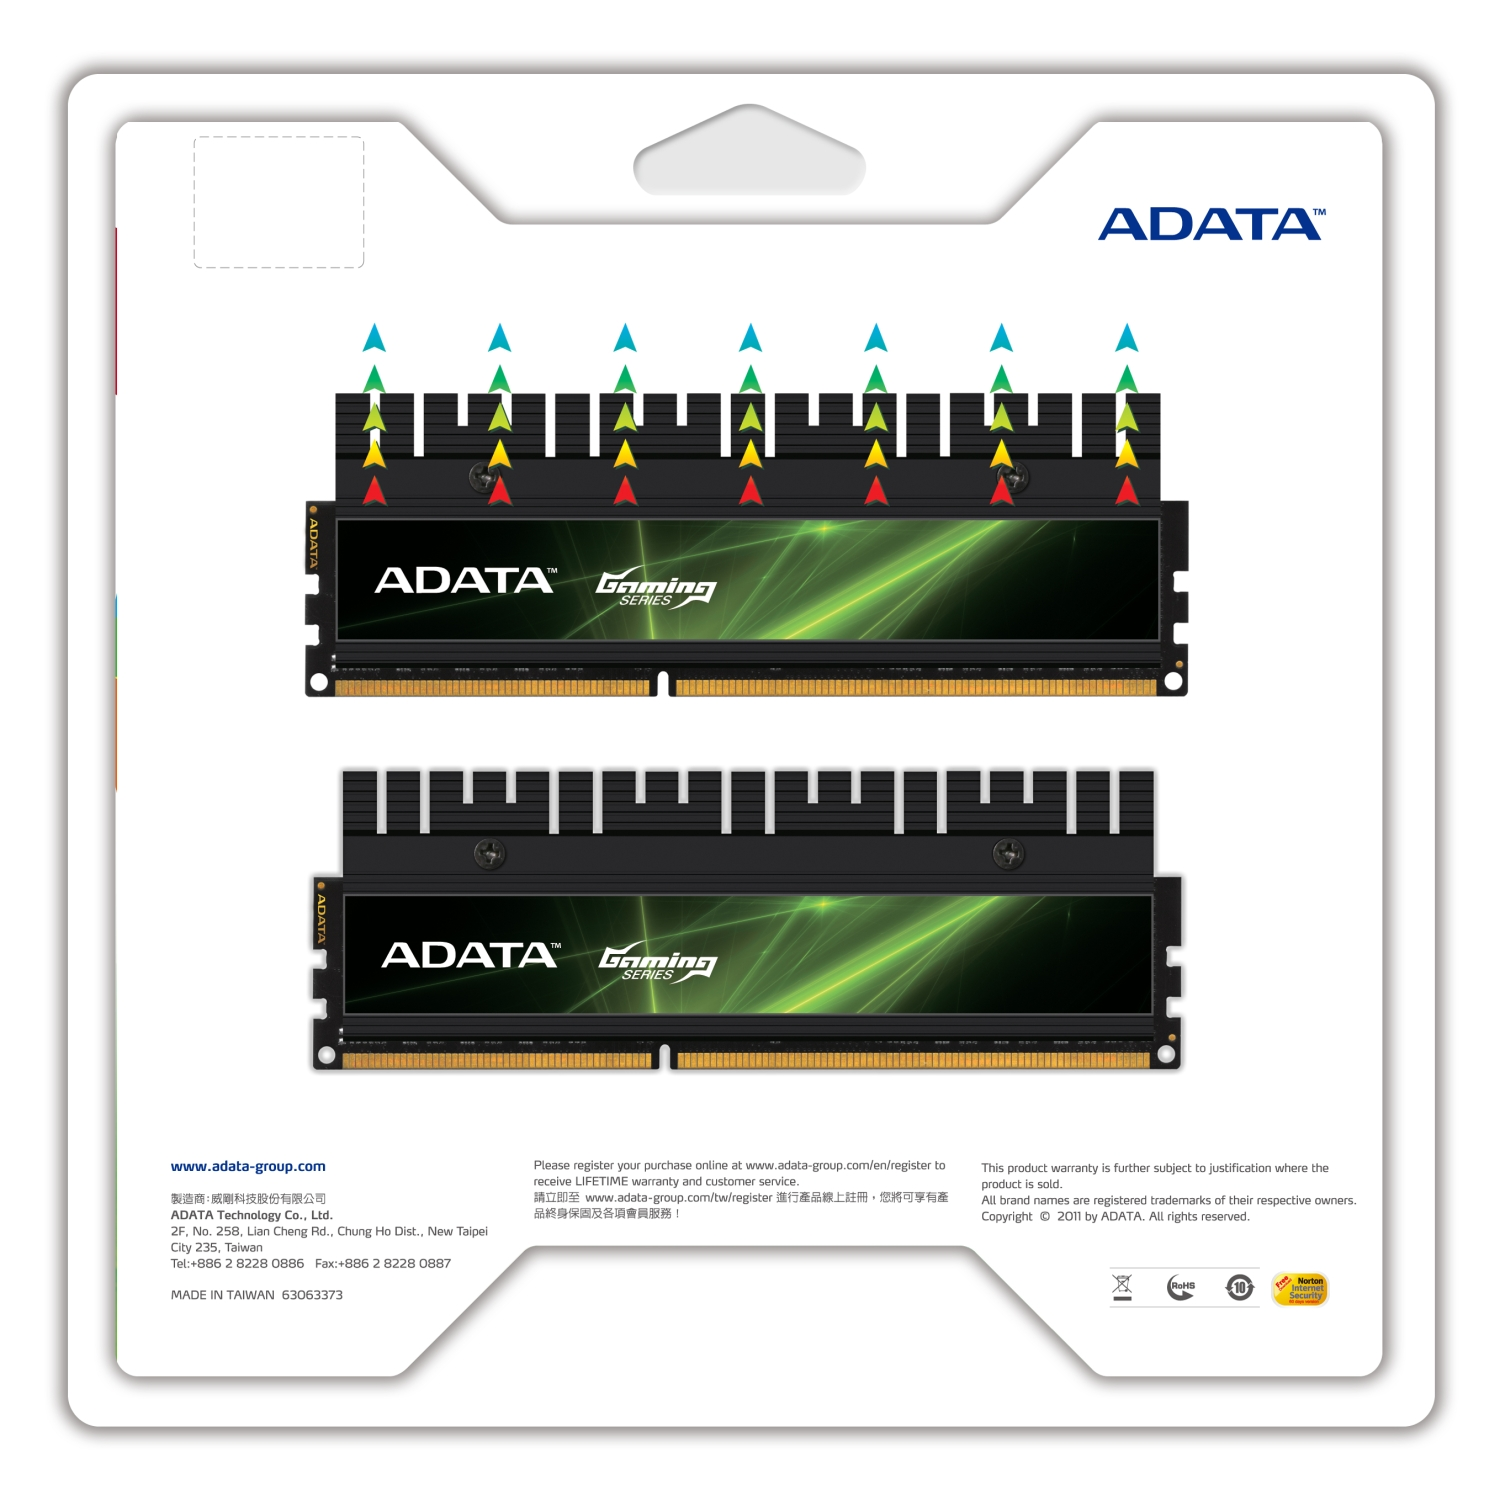 ADATA XPG Gaming DDR3 2400 Dual 8GB package back HiRes 01